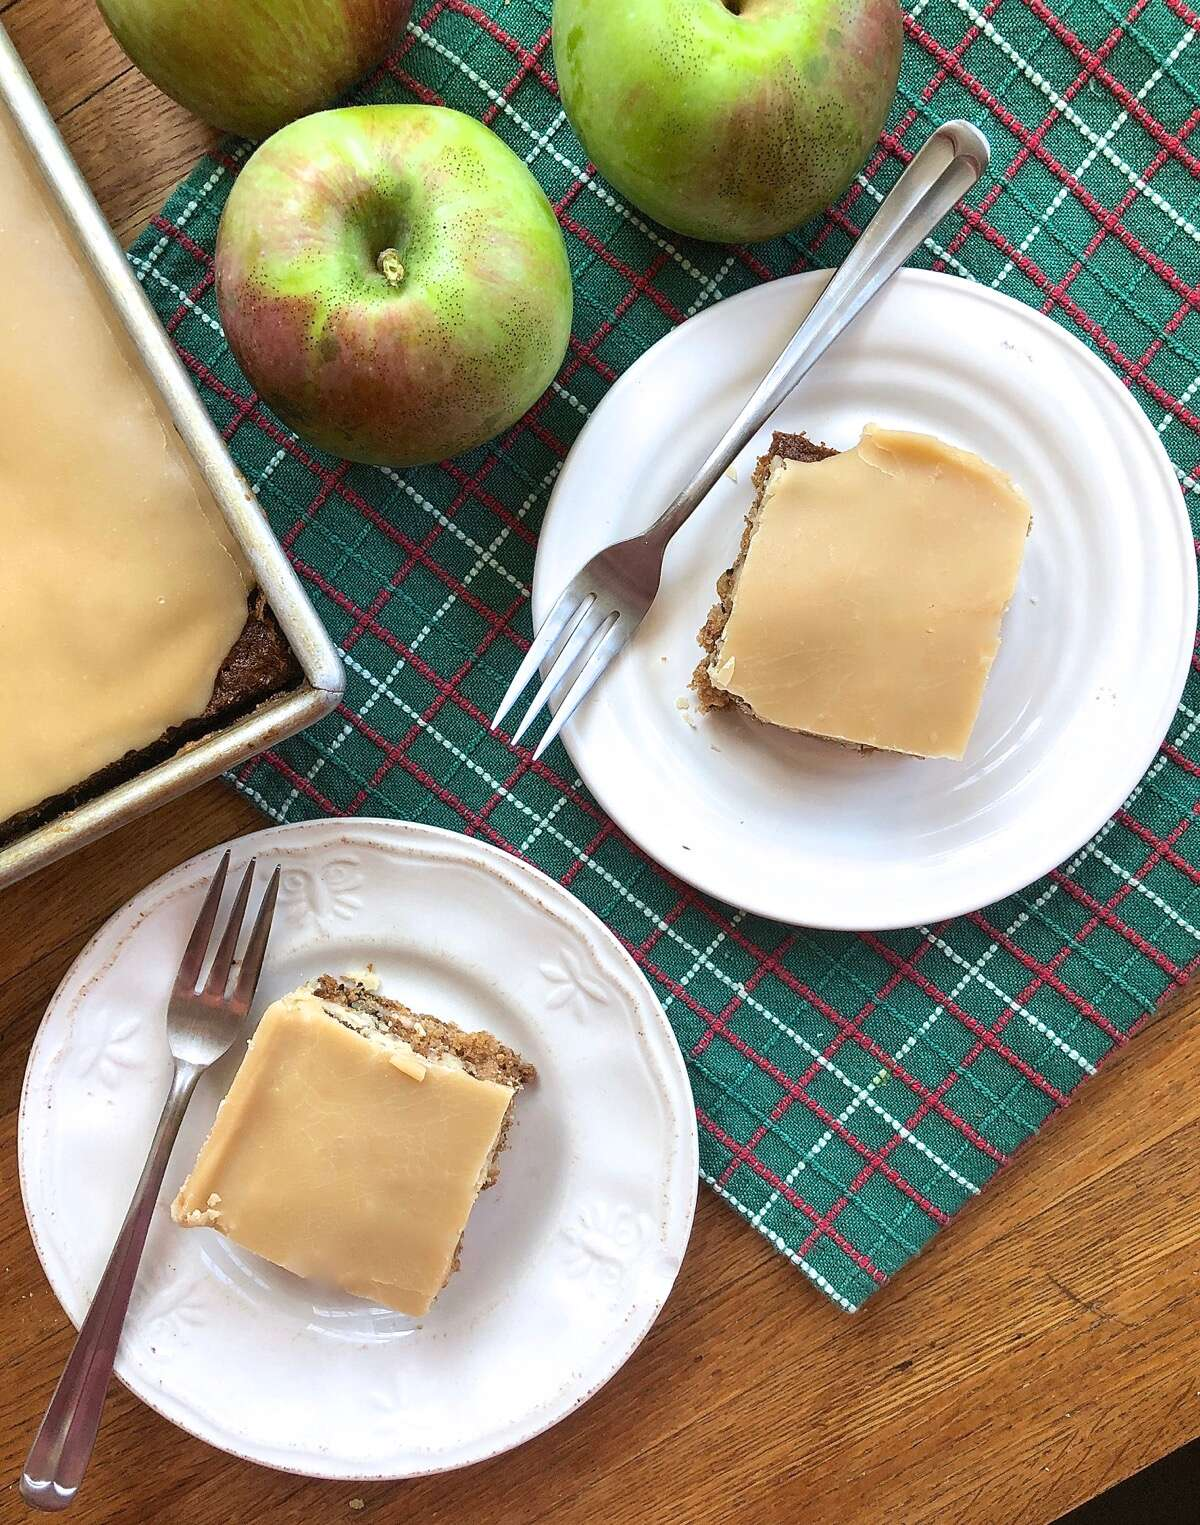 Apple cake with brown sugar frosting cut into squares and served on plates.